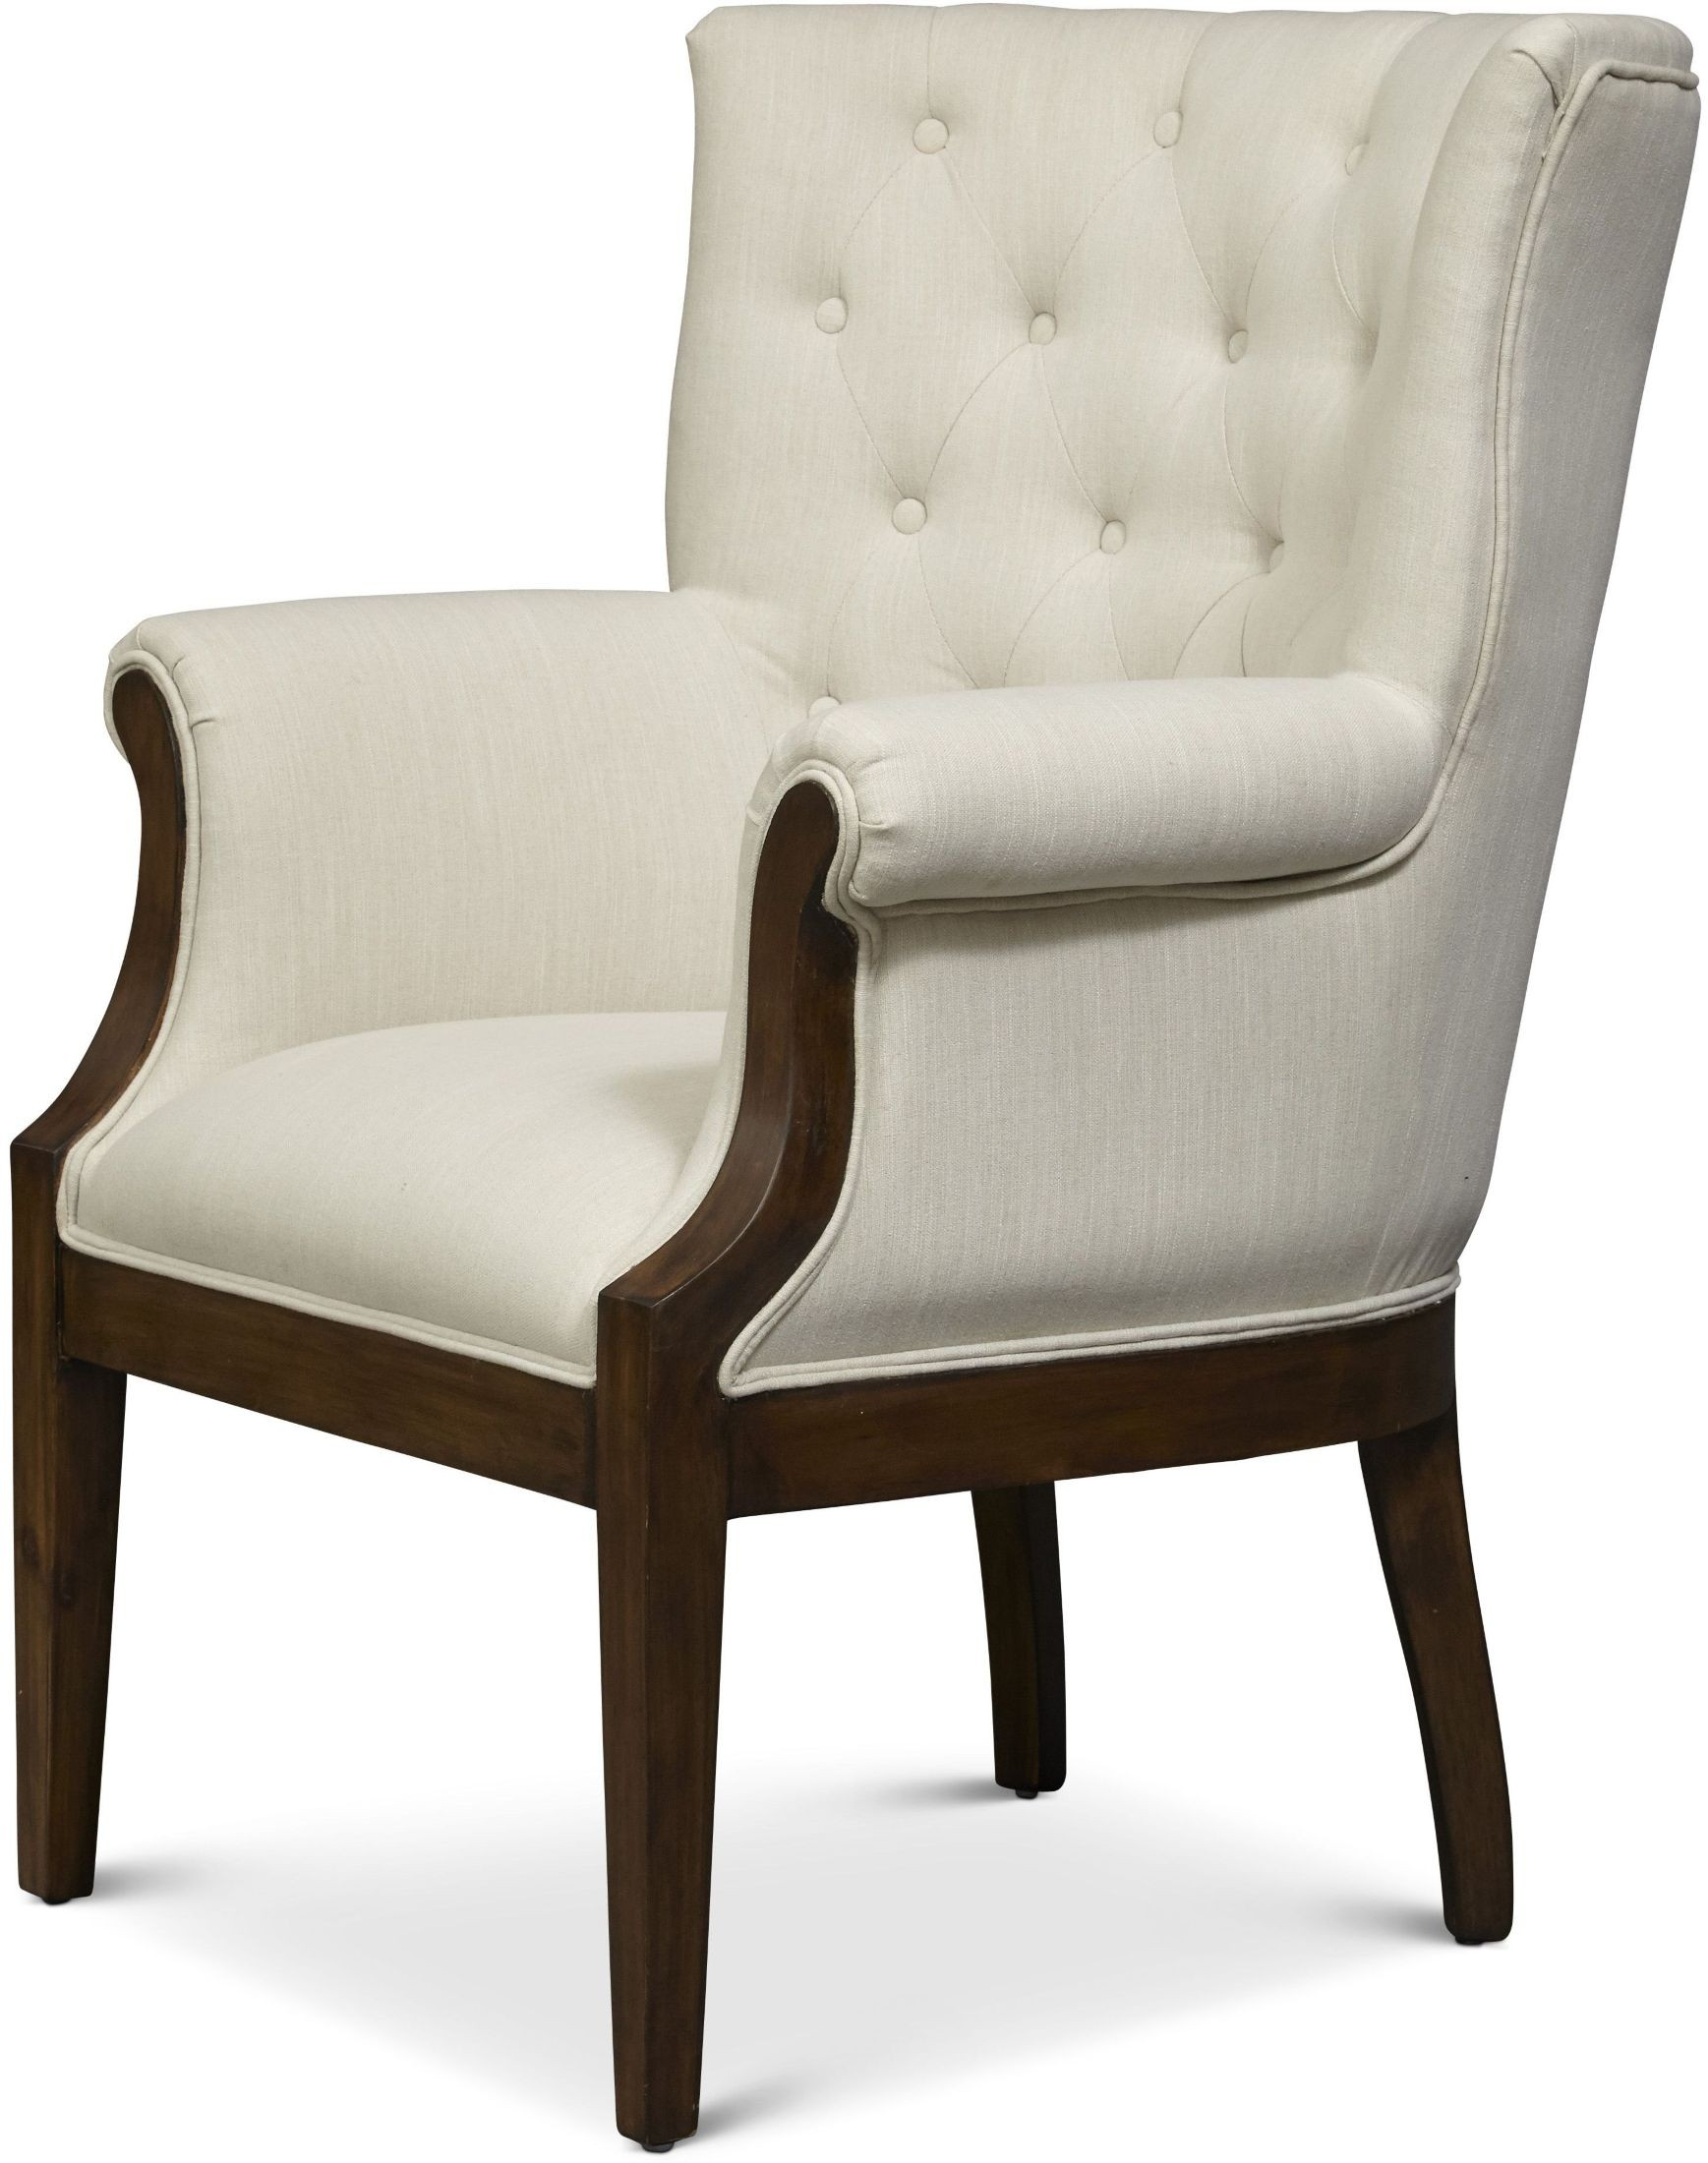 Cream Accent Chair Paxton Walnut Cream Accent Chair From Jofran Coleman